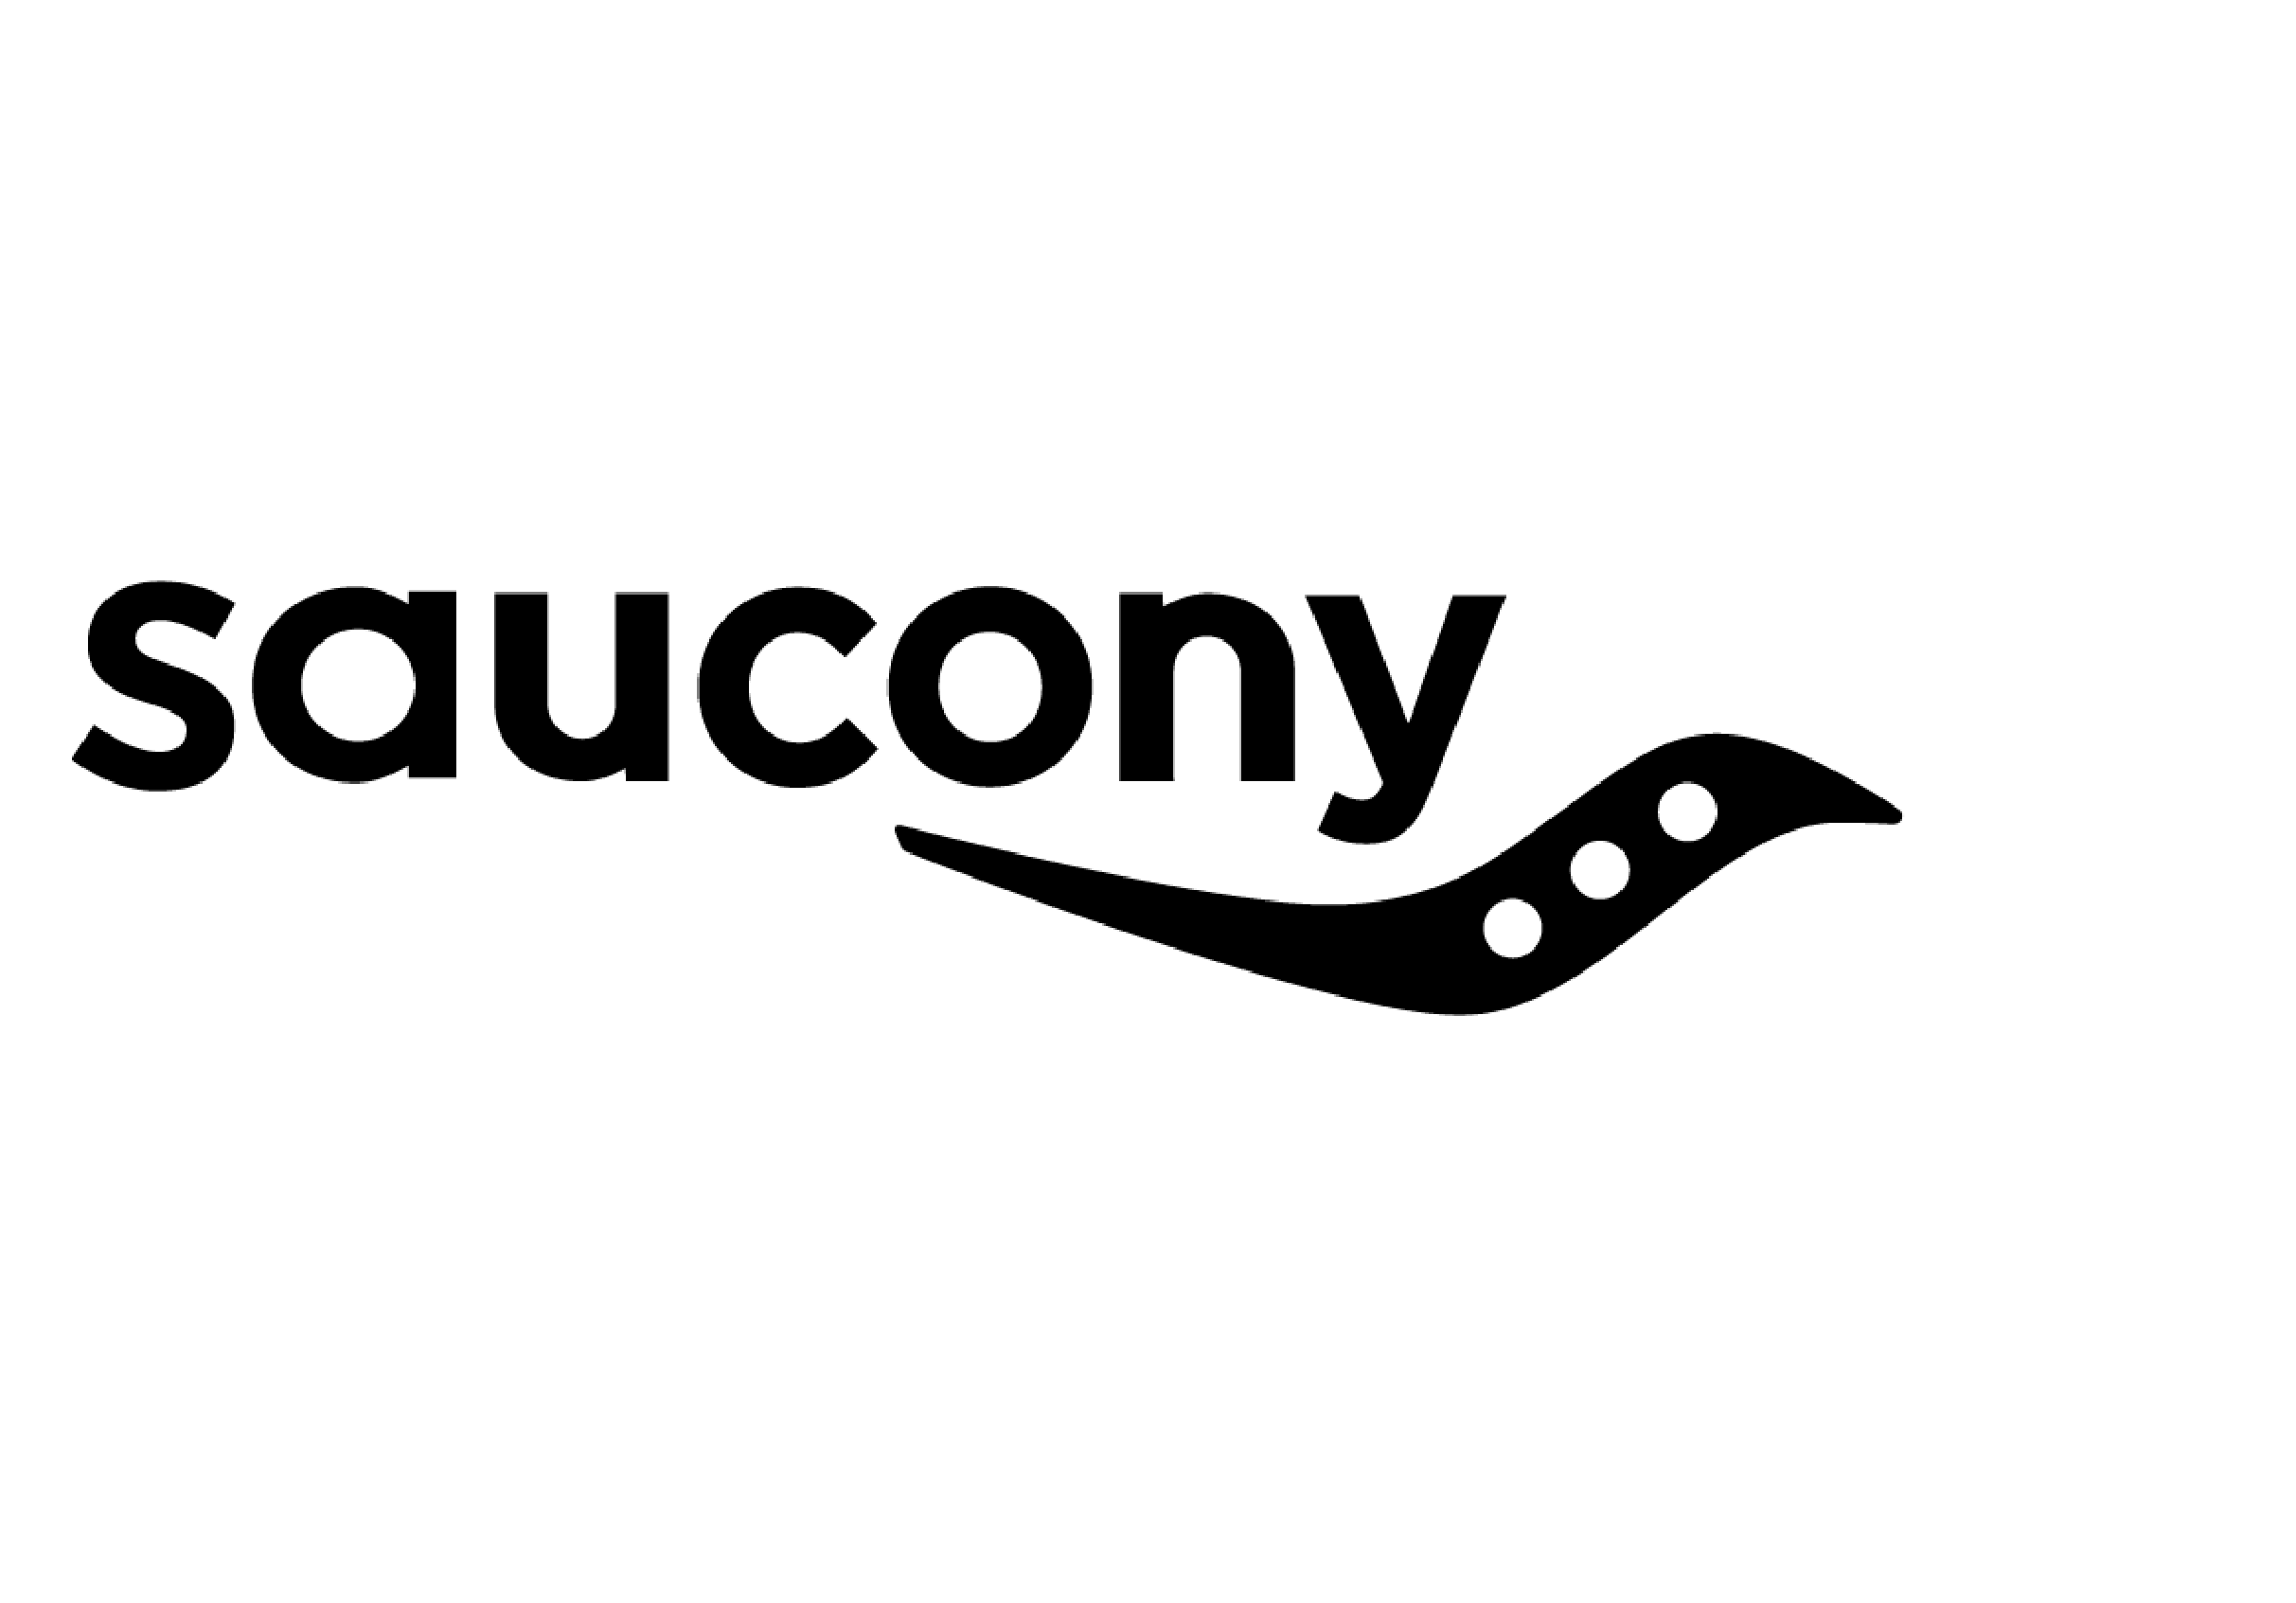 15% off all full priced items at  saucony.com  with  promo code*